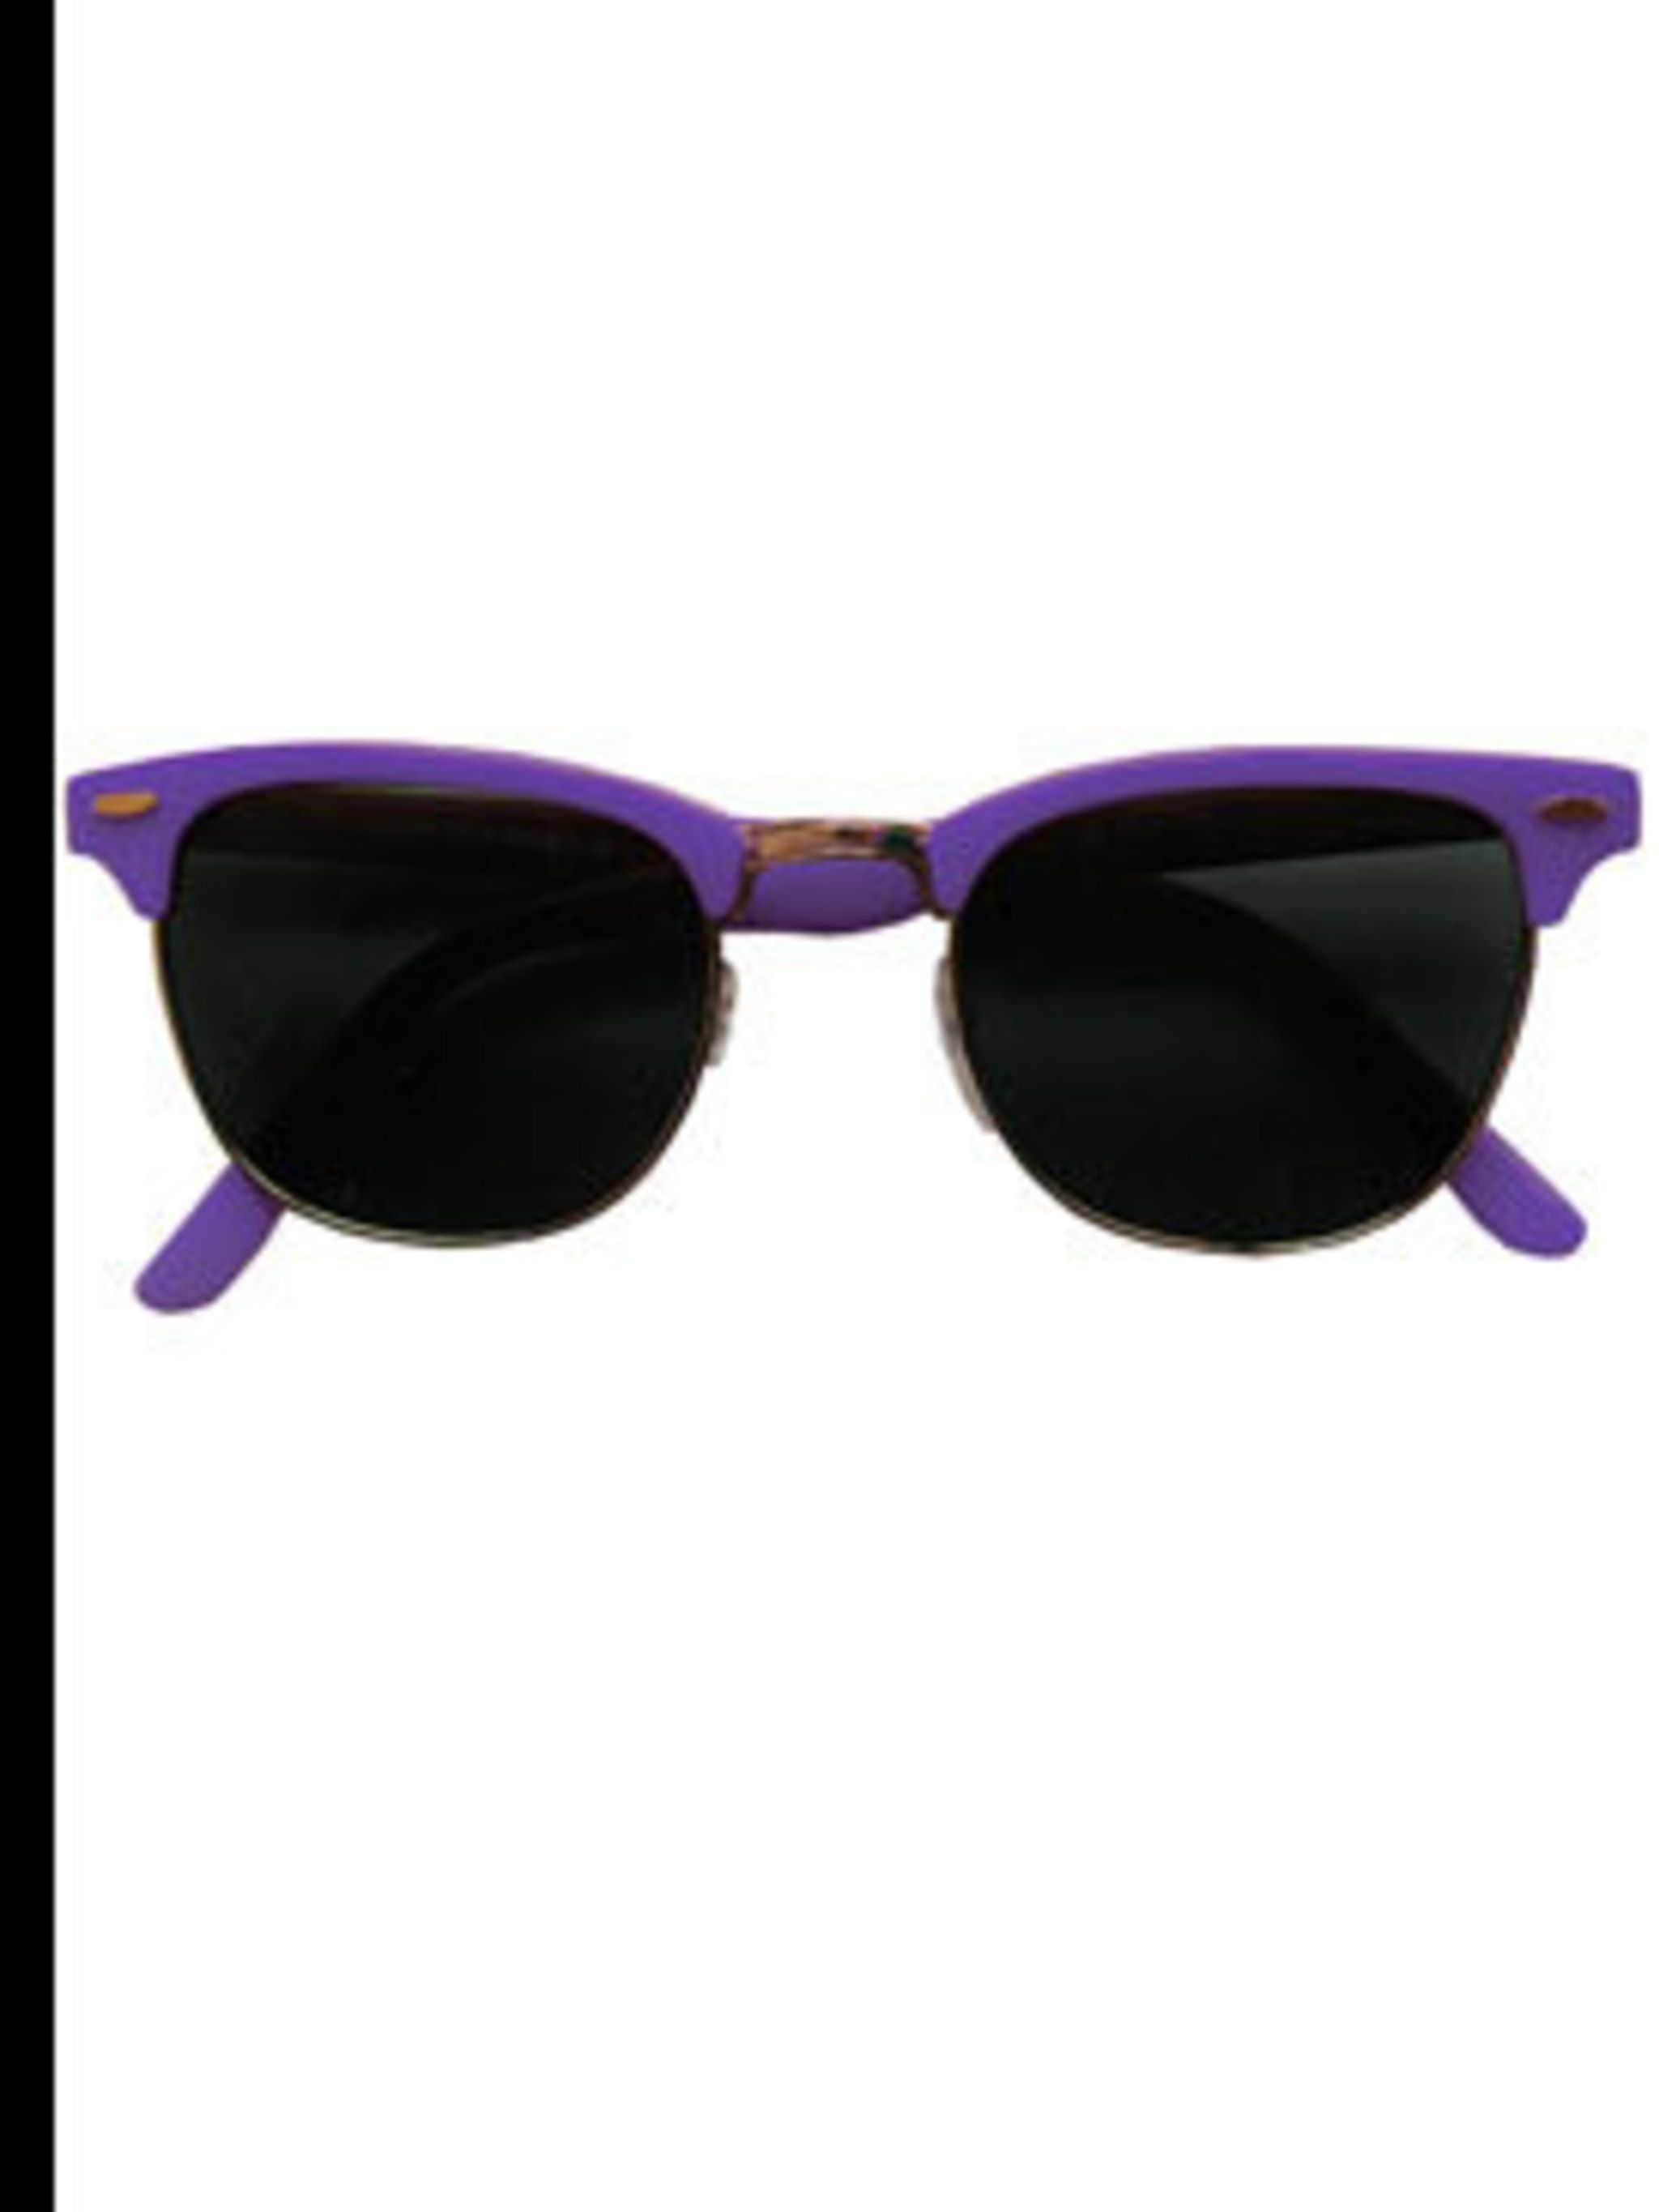 "<p>Purple sunglasses, £14, by <a href=""http://www.lazyoaf.co.uk/product_info.php?cPath=72_83&products_id=1289"">Lazy Oaf</a></p>"